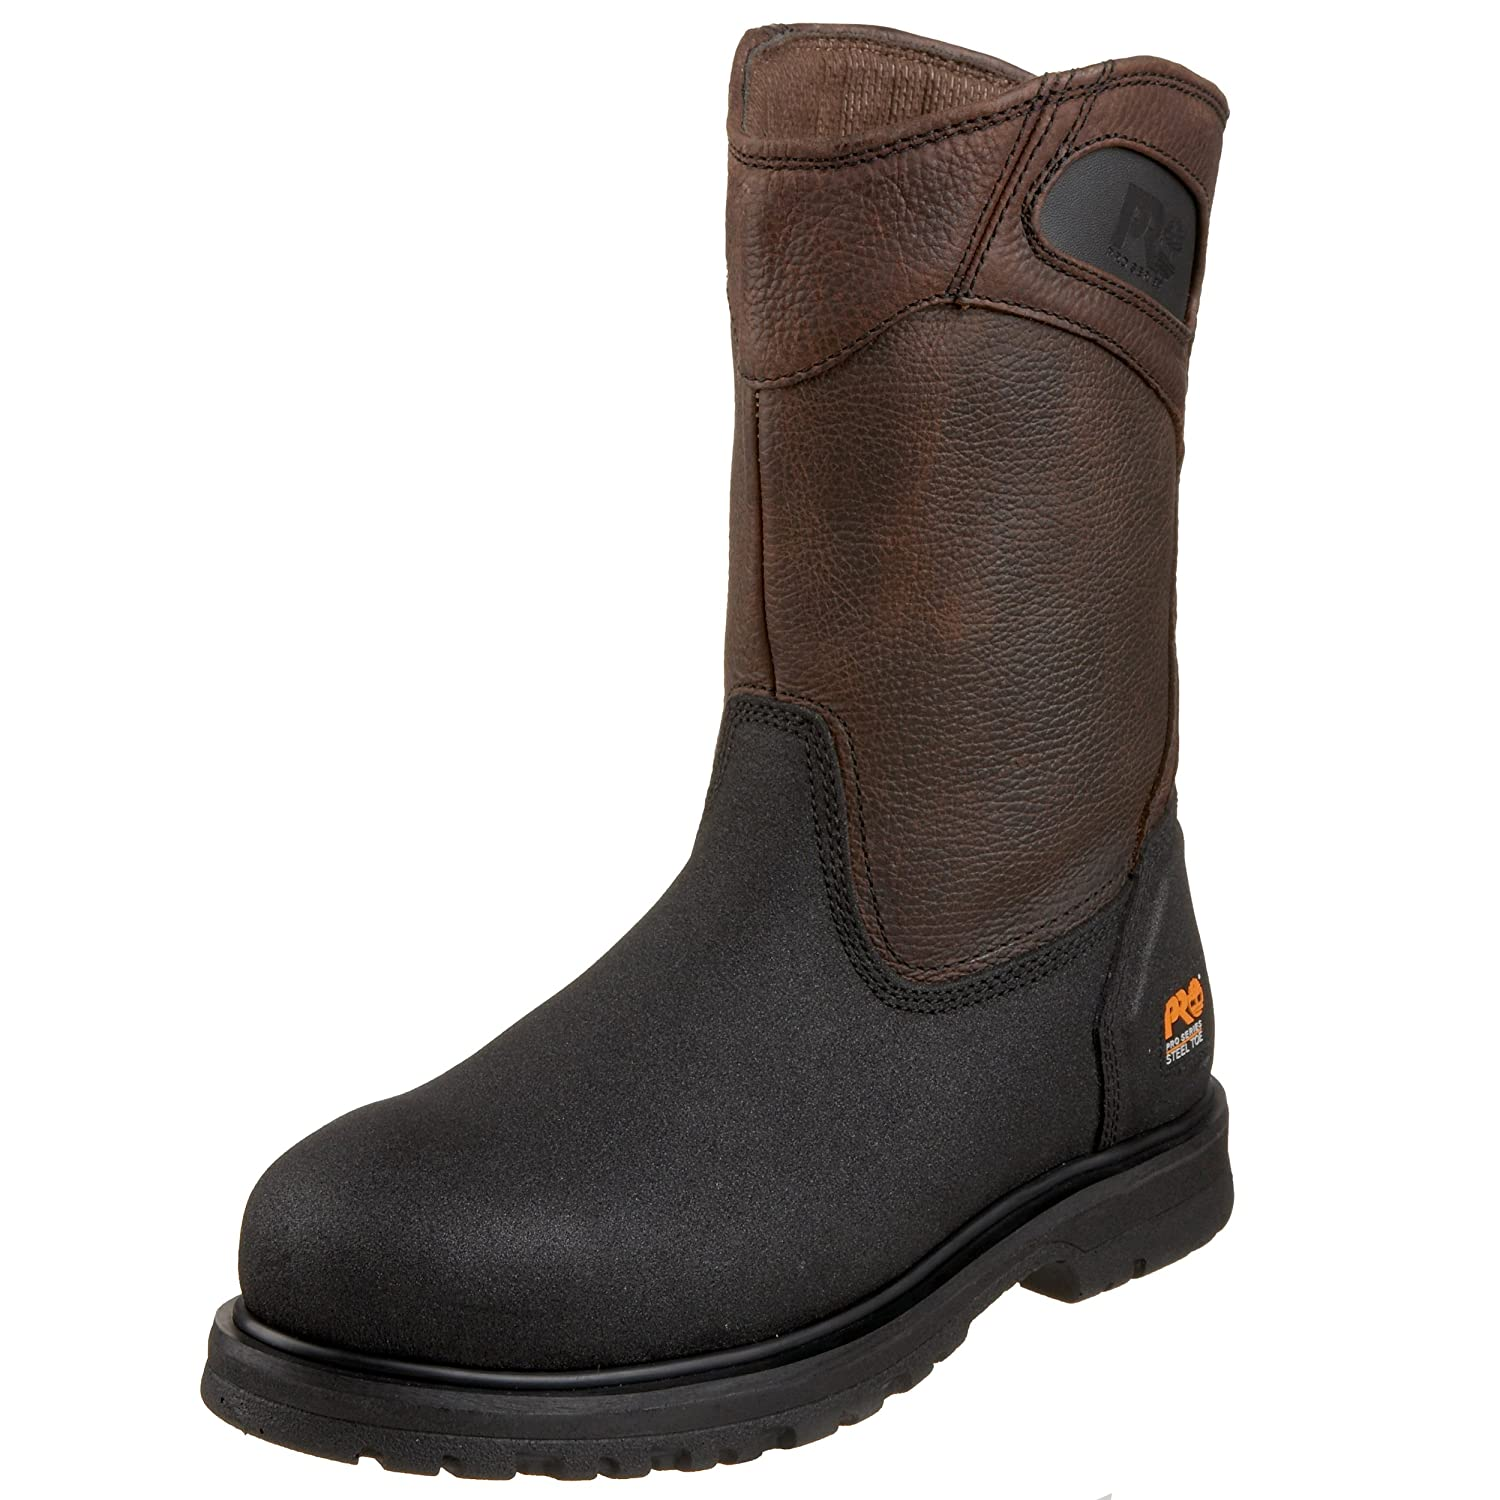 Timberland PRO メンズ B001EBOR30 8.5 2E US|Rancher Brown Rancher Brown 8.5 2E US